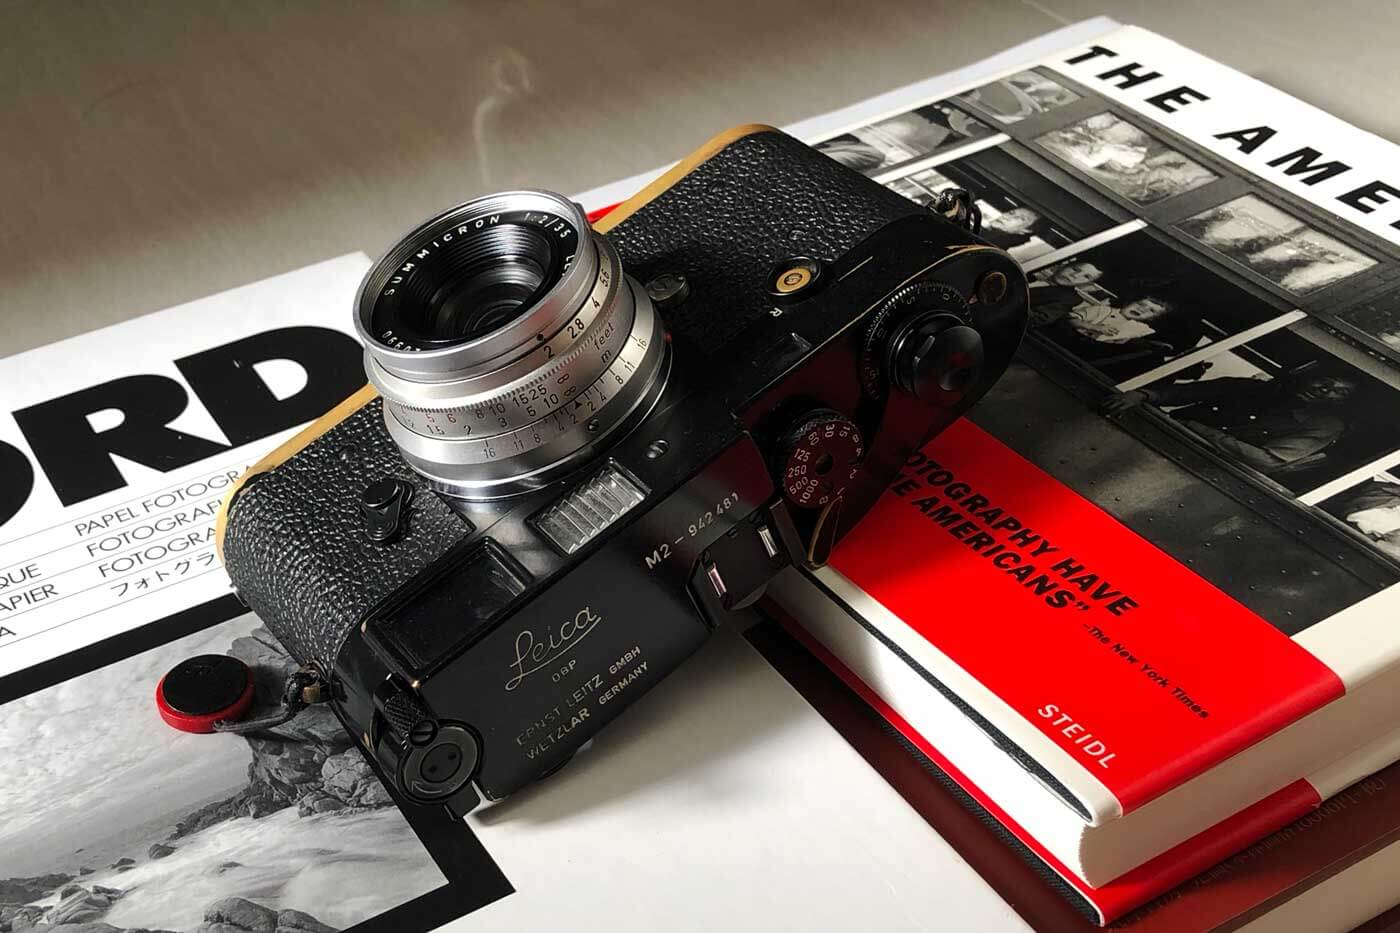 Leica-summicron-35mm-f2-8element-8-element-v1-version1-lens-review-blog-sharing-thoughts-compare-7element-gear-how-performance-design-optics-character-books-m2-black-paint-silver-chrome